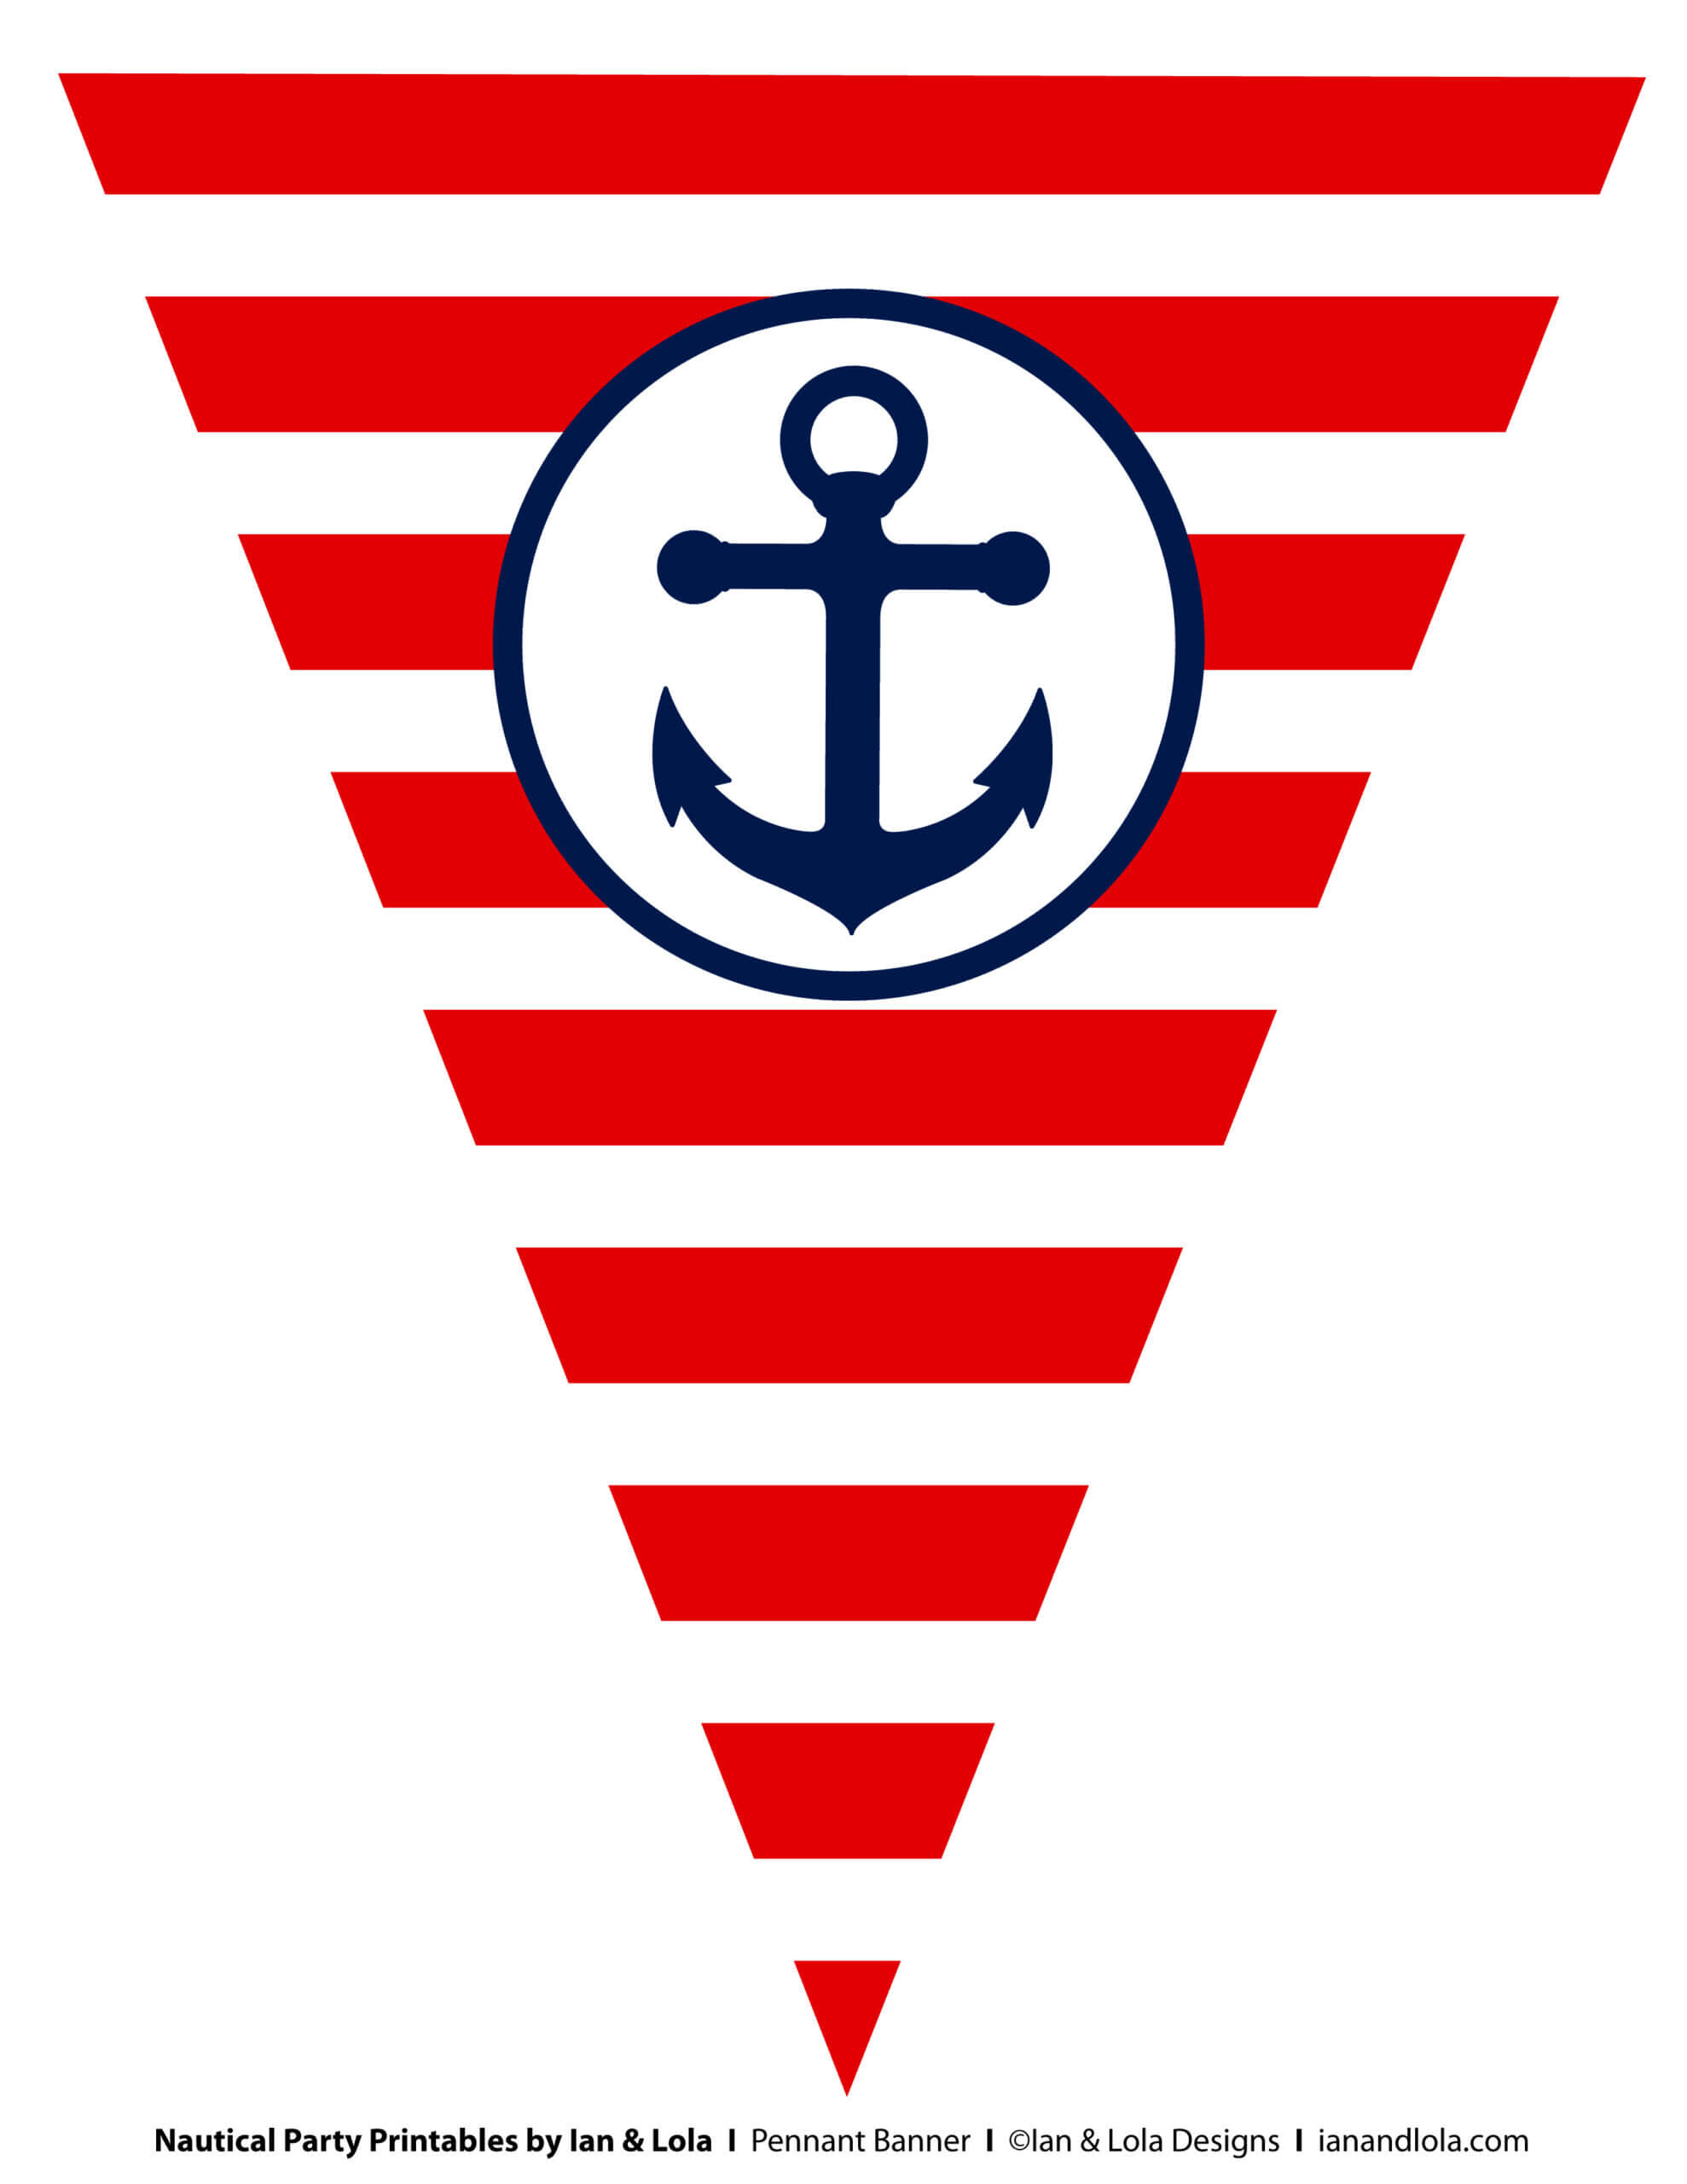 Free Nautical Party Printables From Ian & Lola Designs Within Nautical Banner Template